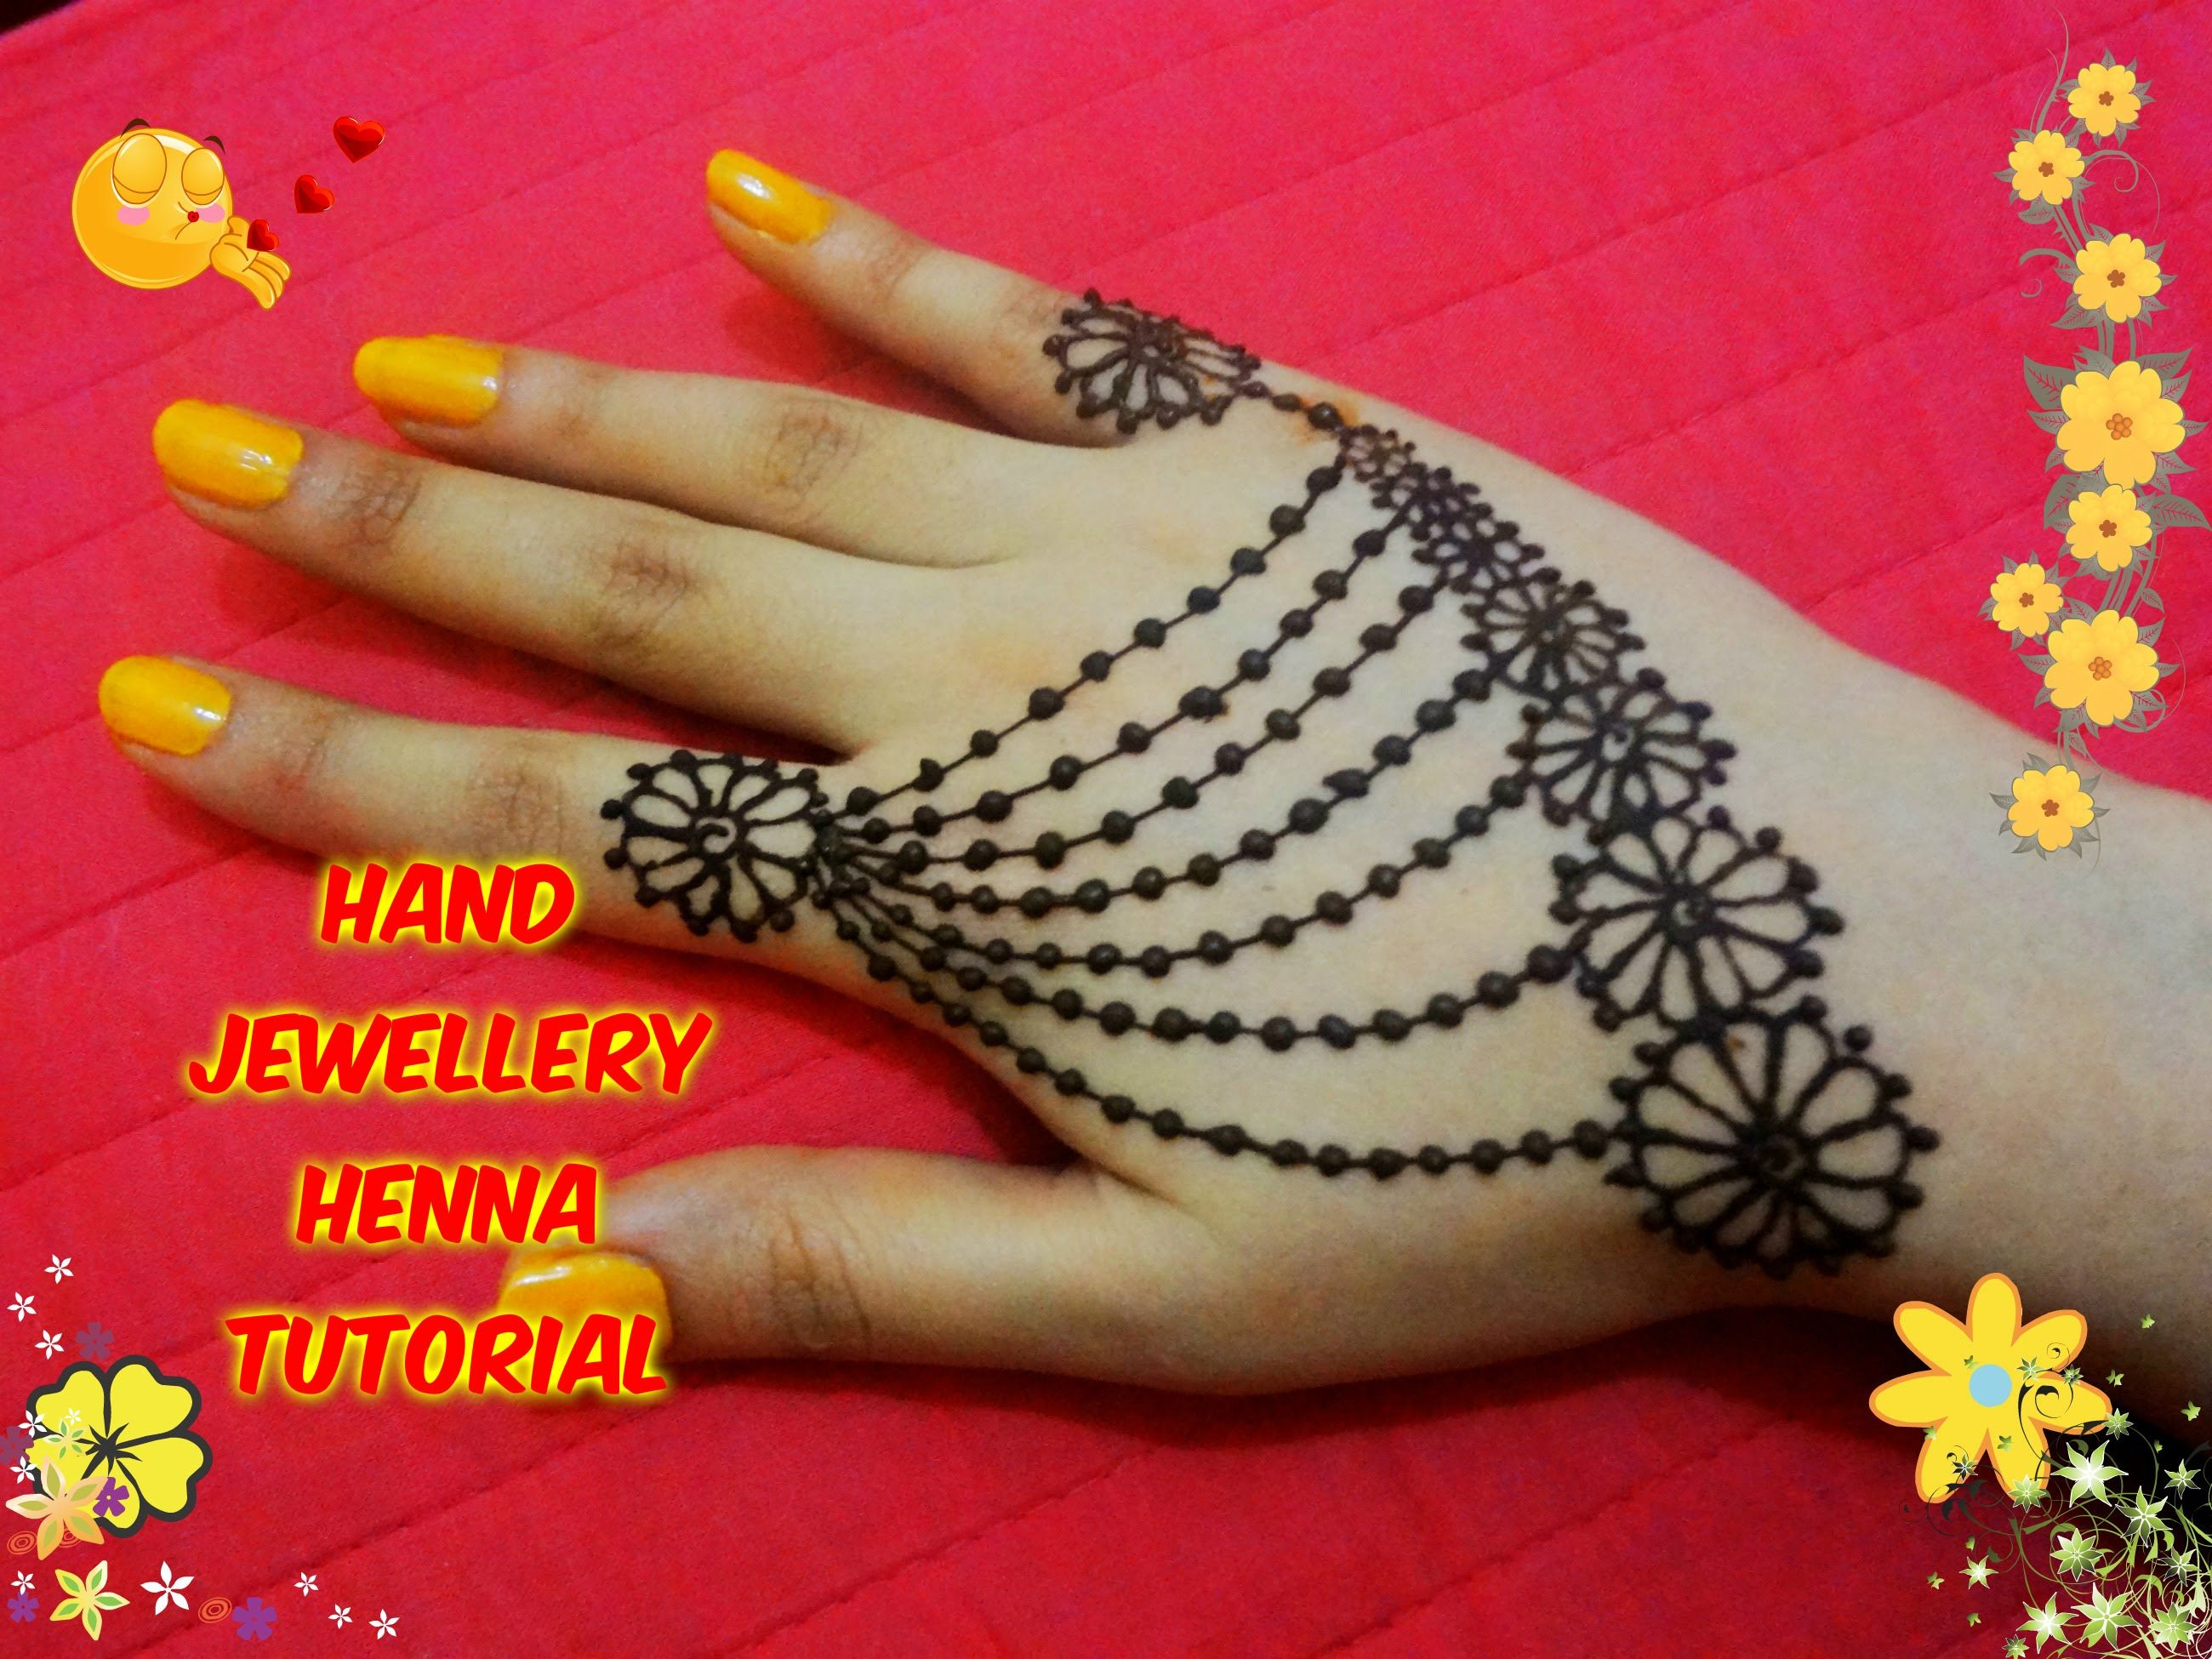 Mehndi Bracelet Designs 2016 : Easy diy best and beautiful hand jewellery henna mehndi design